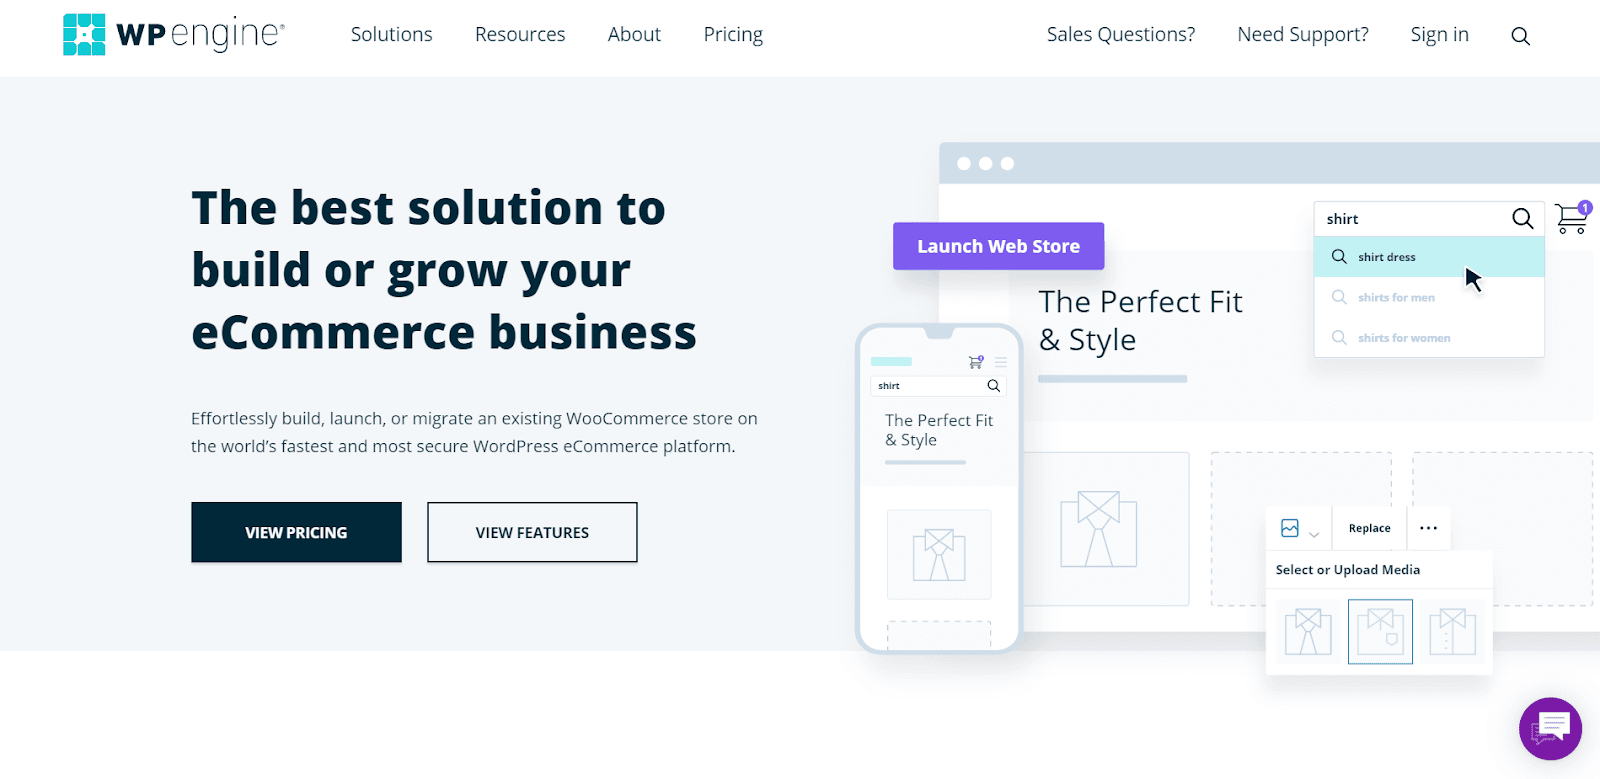 WP Engine's eCommerce solution homepage.